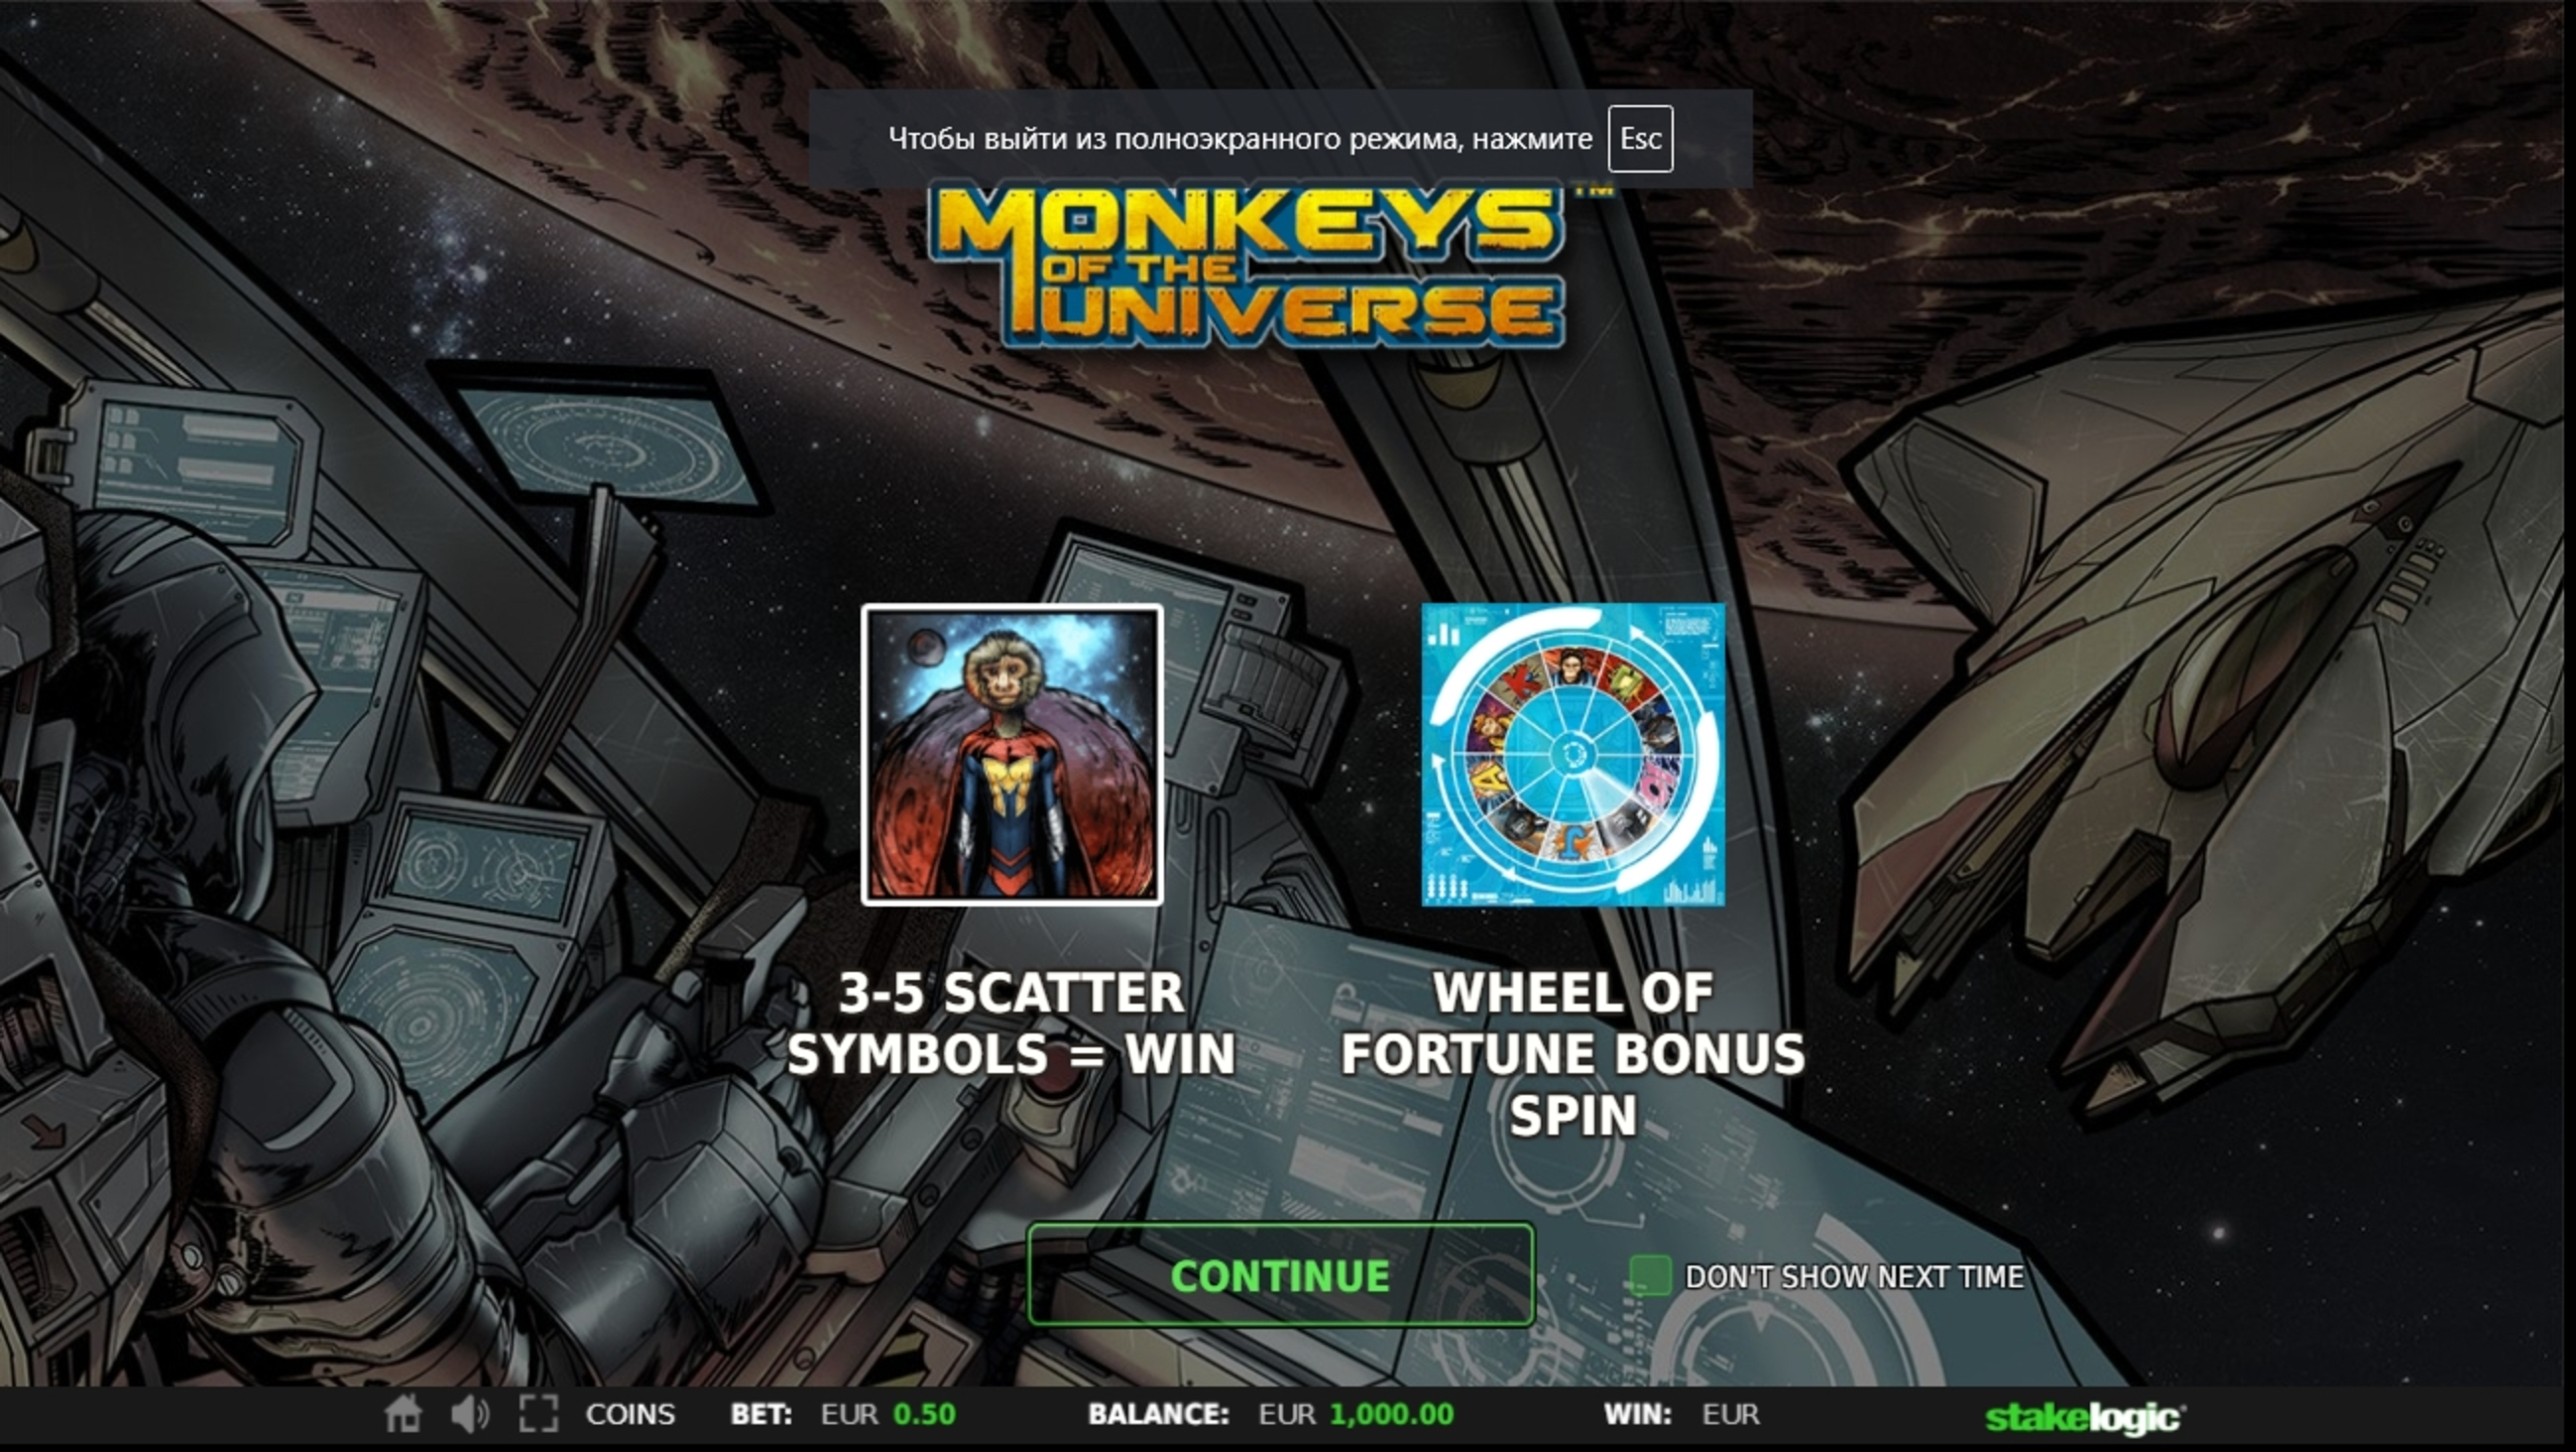 Play Monkeys of the Universe Free Casino Slot Game by Stakelogic